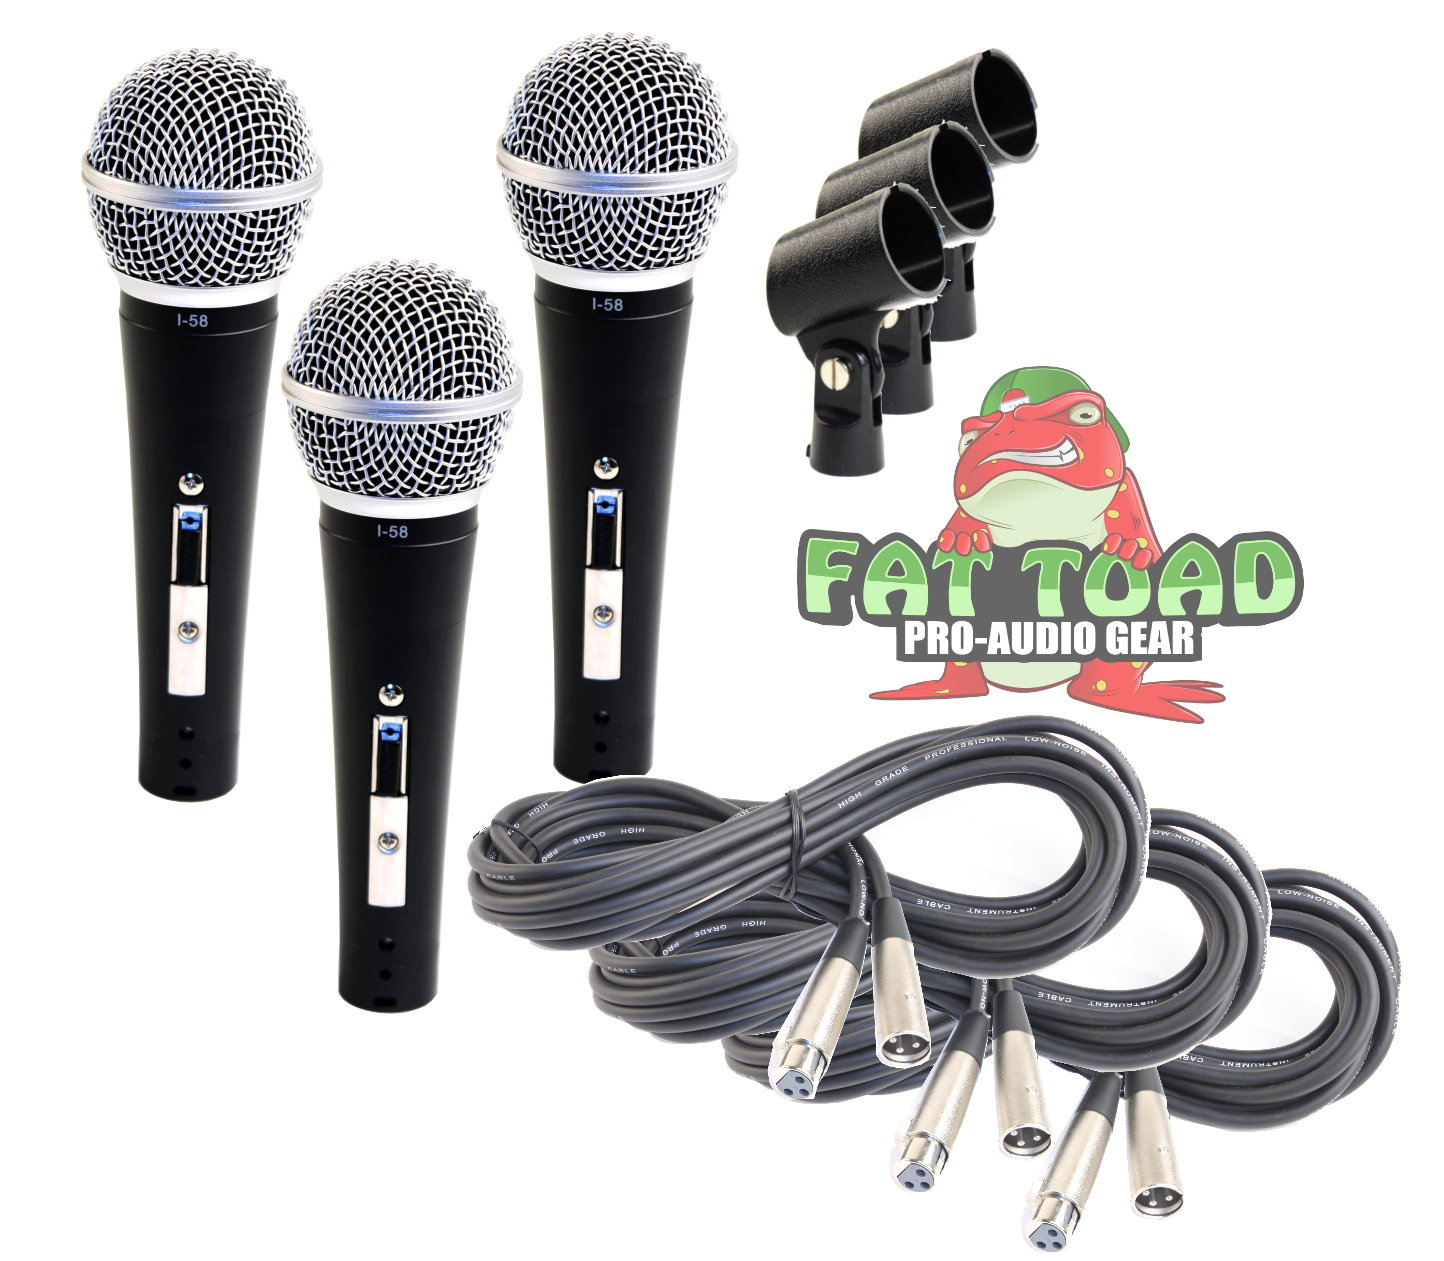 Microphone earbuds handheld singing - earbuds with microphone under 5.00